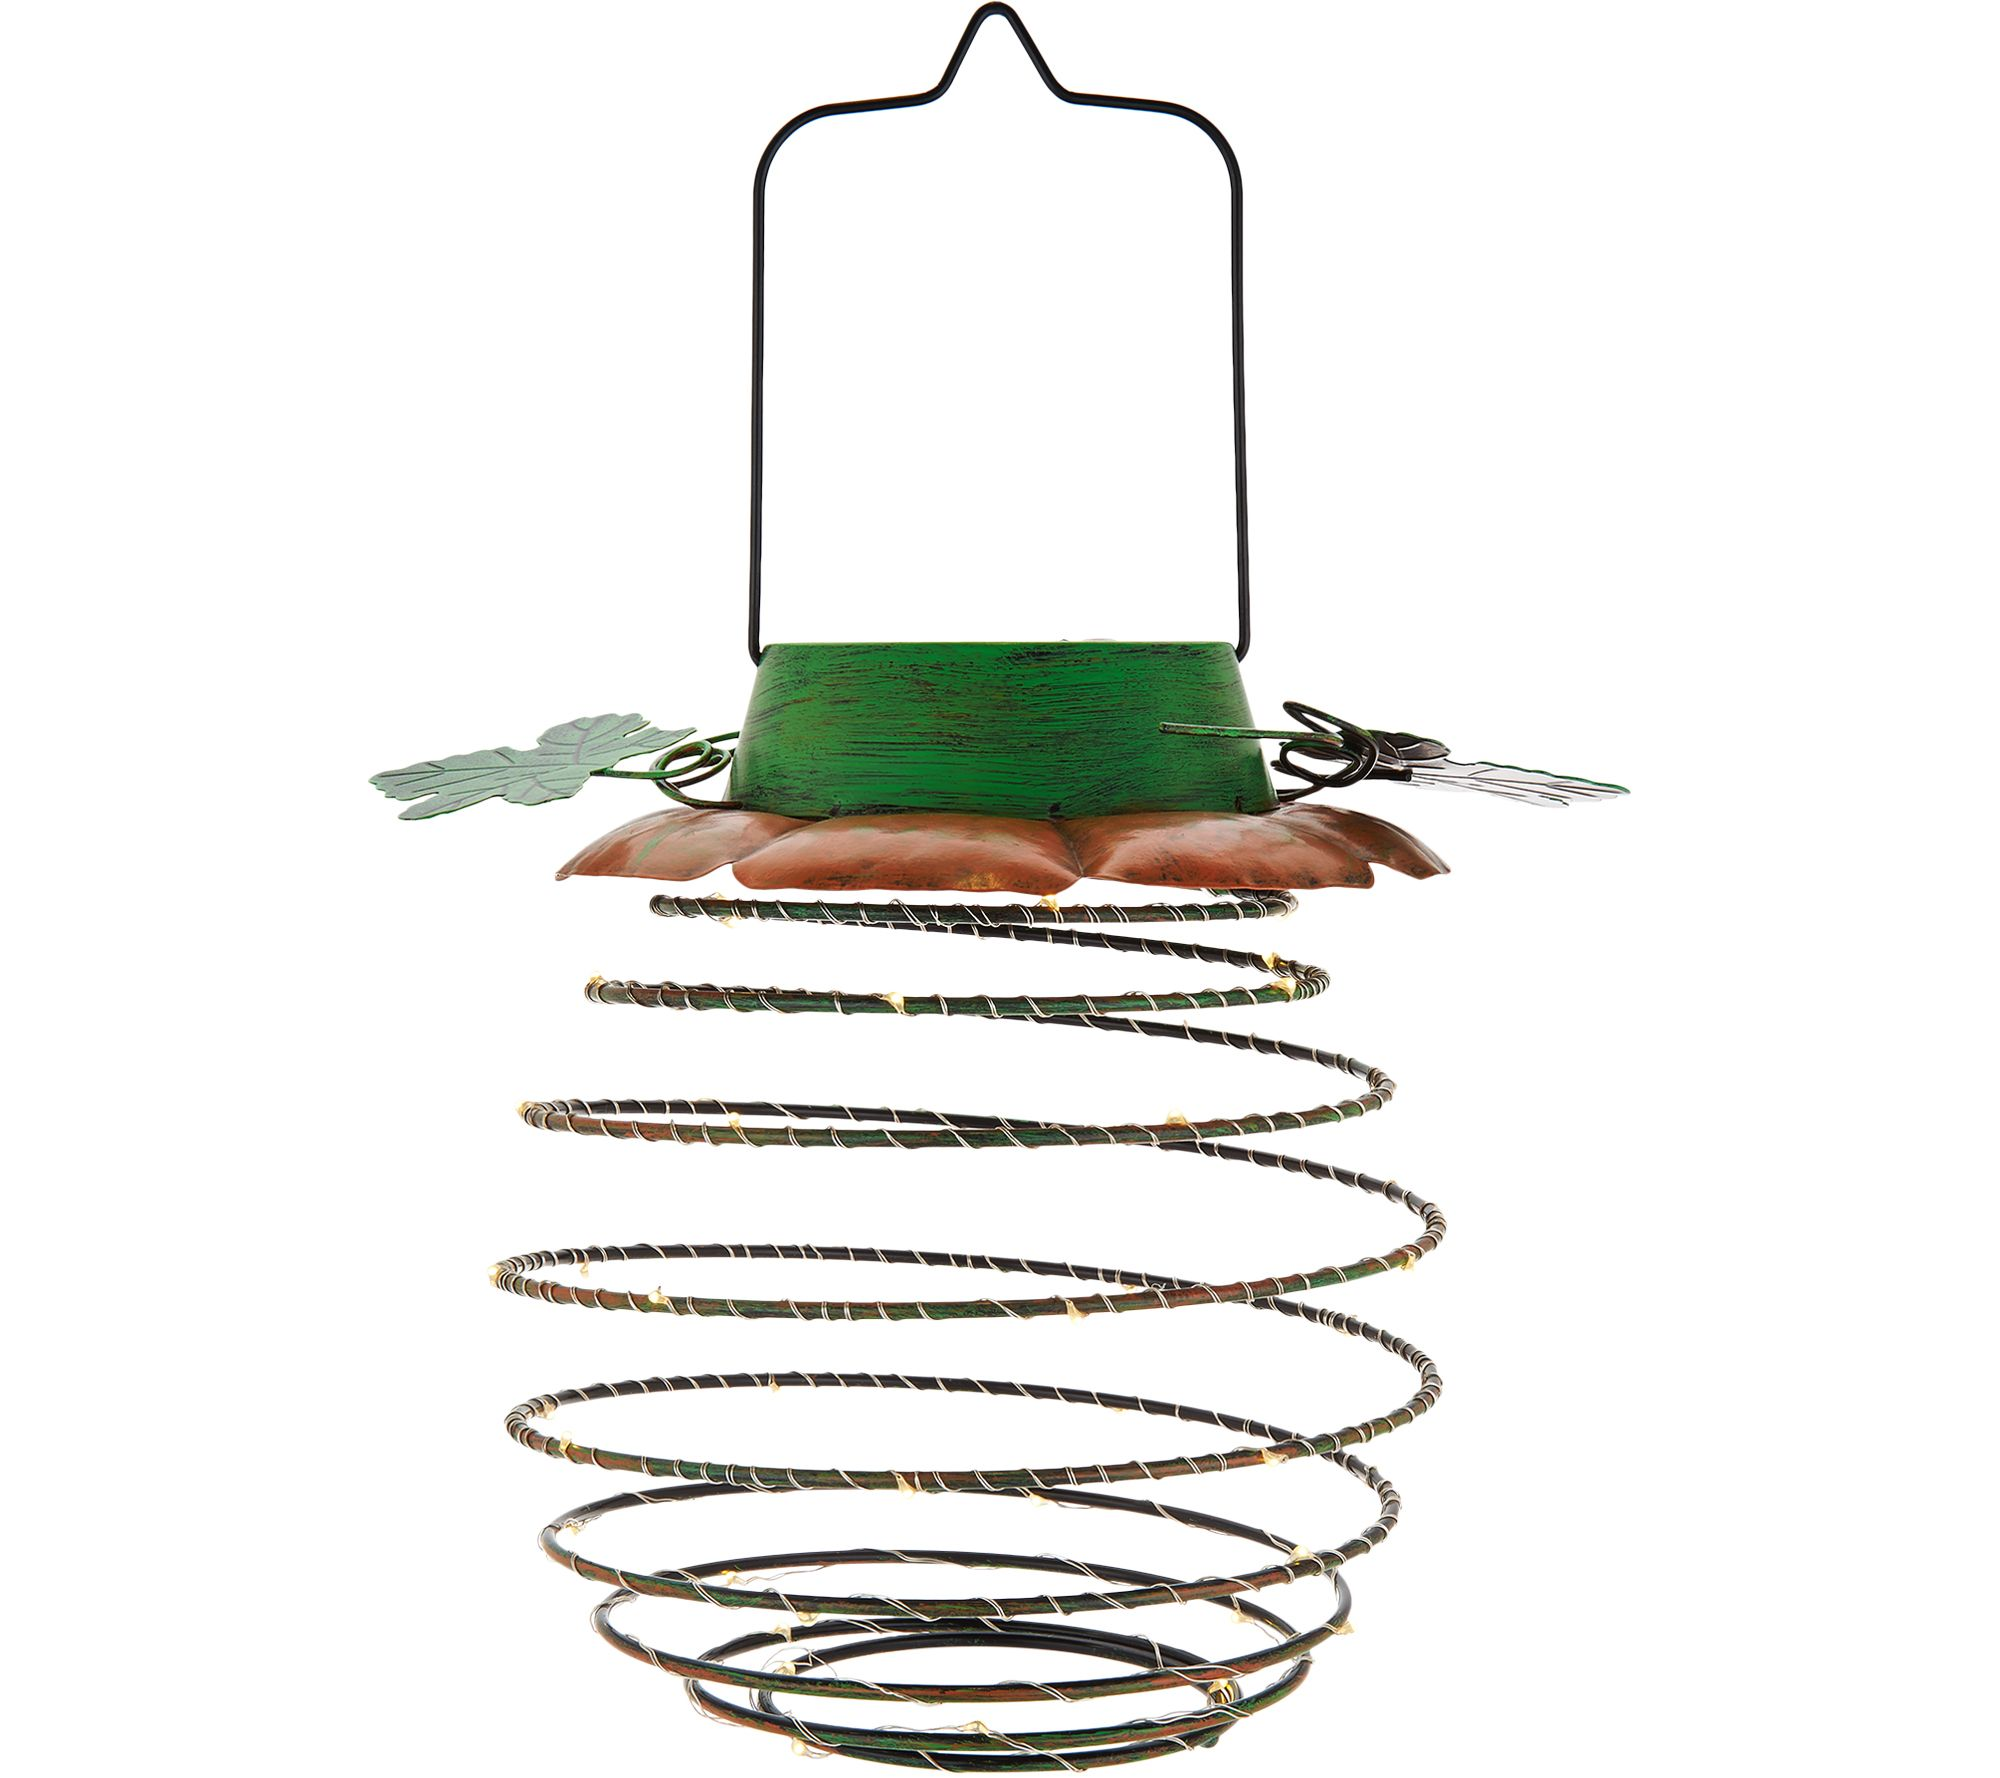 Qvc Outdoor Wall Lights: Plow & Hearth Solar Hanging Decorative Top Lantern